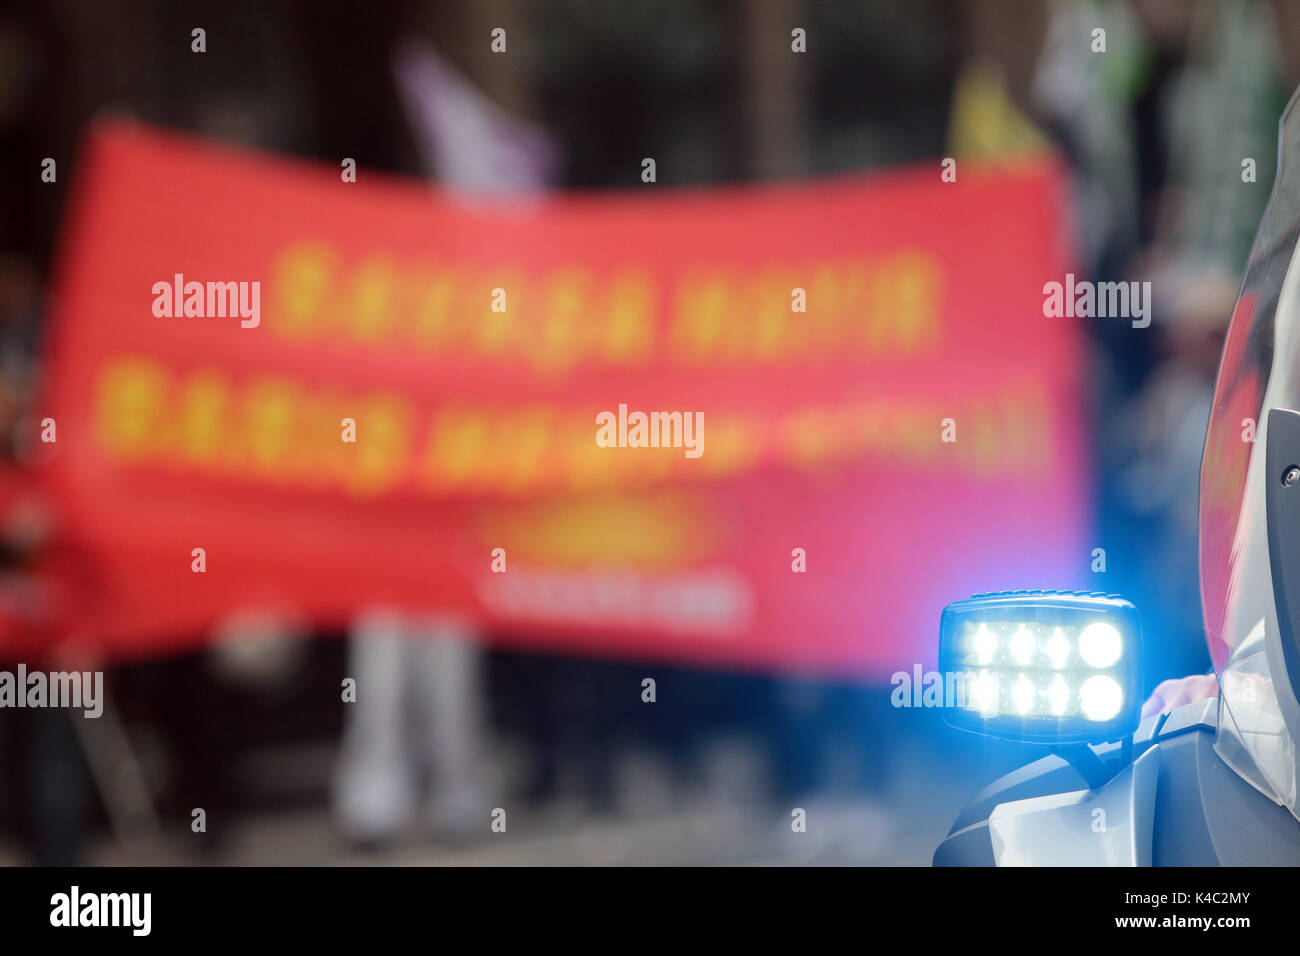 Police Signal With Protesting Activists - Stock Image